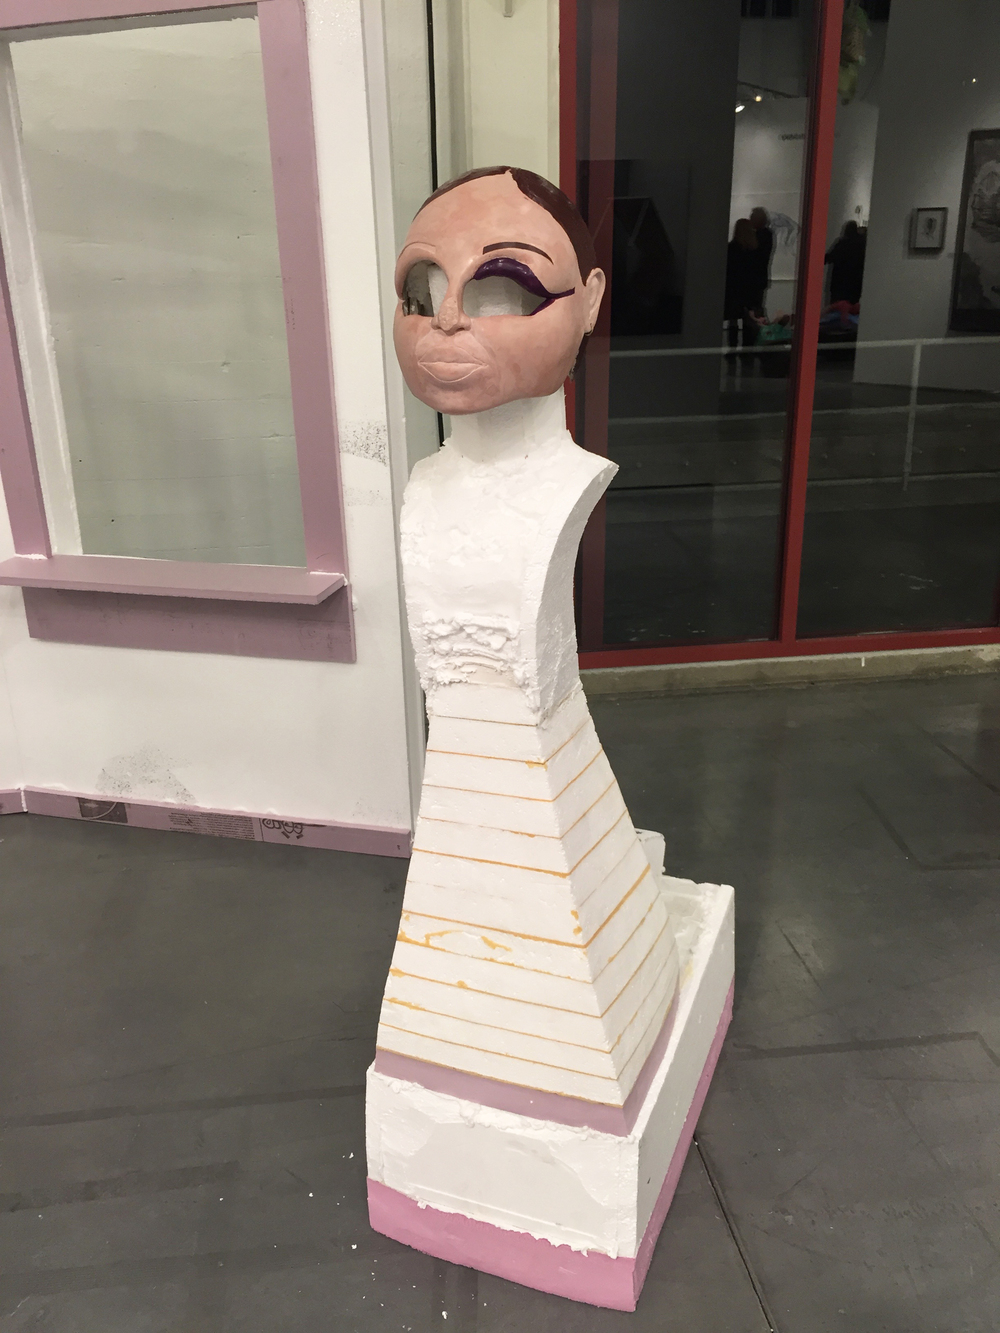 american empire 2 , 2015.  styrofoam, extruded polystyrene, mylar, spray polyurethane.  dimensions variable.  Exhibited at SFAI Vernissage at Fort Mason, May 2015.